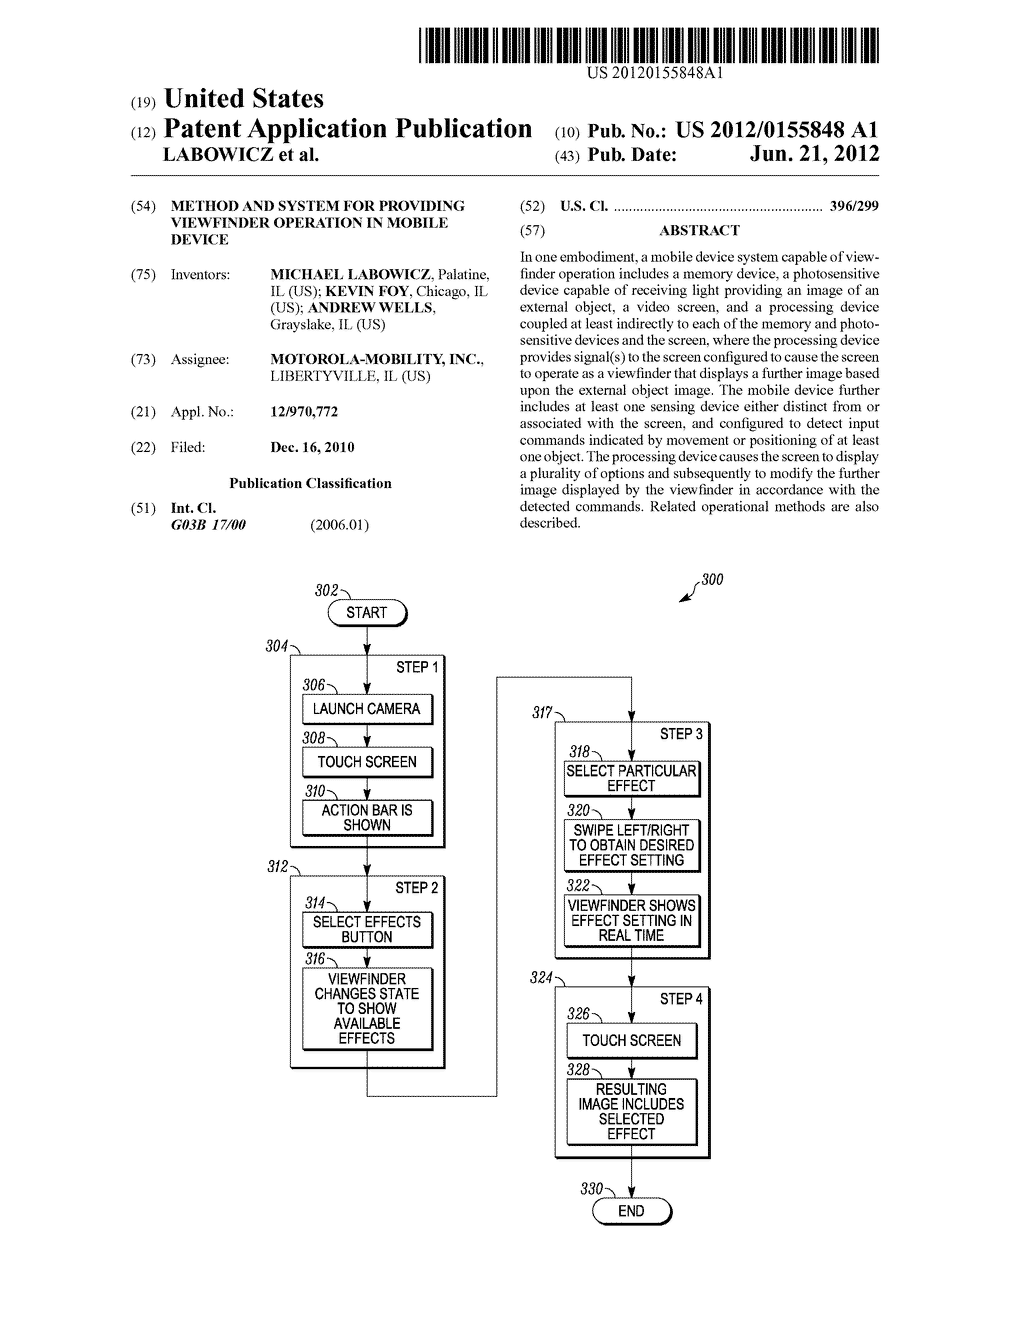 Method and System for Providing Viewfinder Operation in Mobile Device - diagram, schematic, and image 01